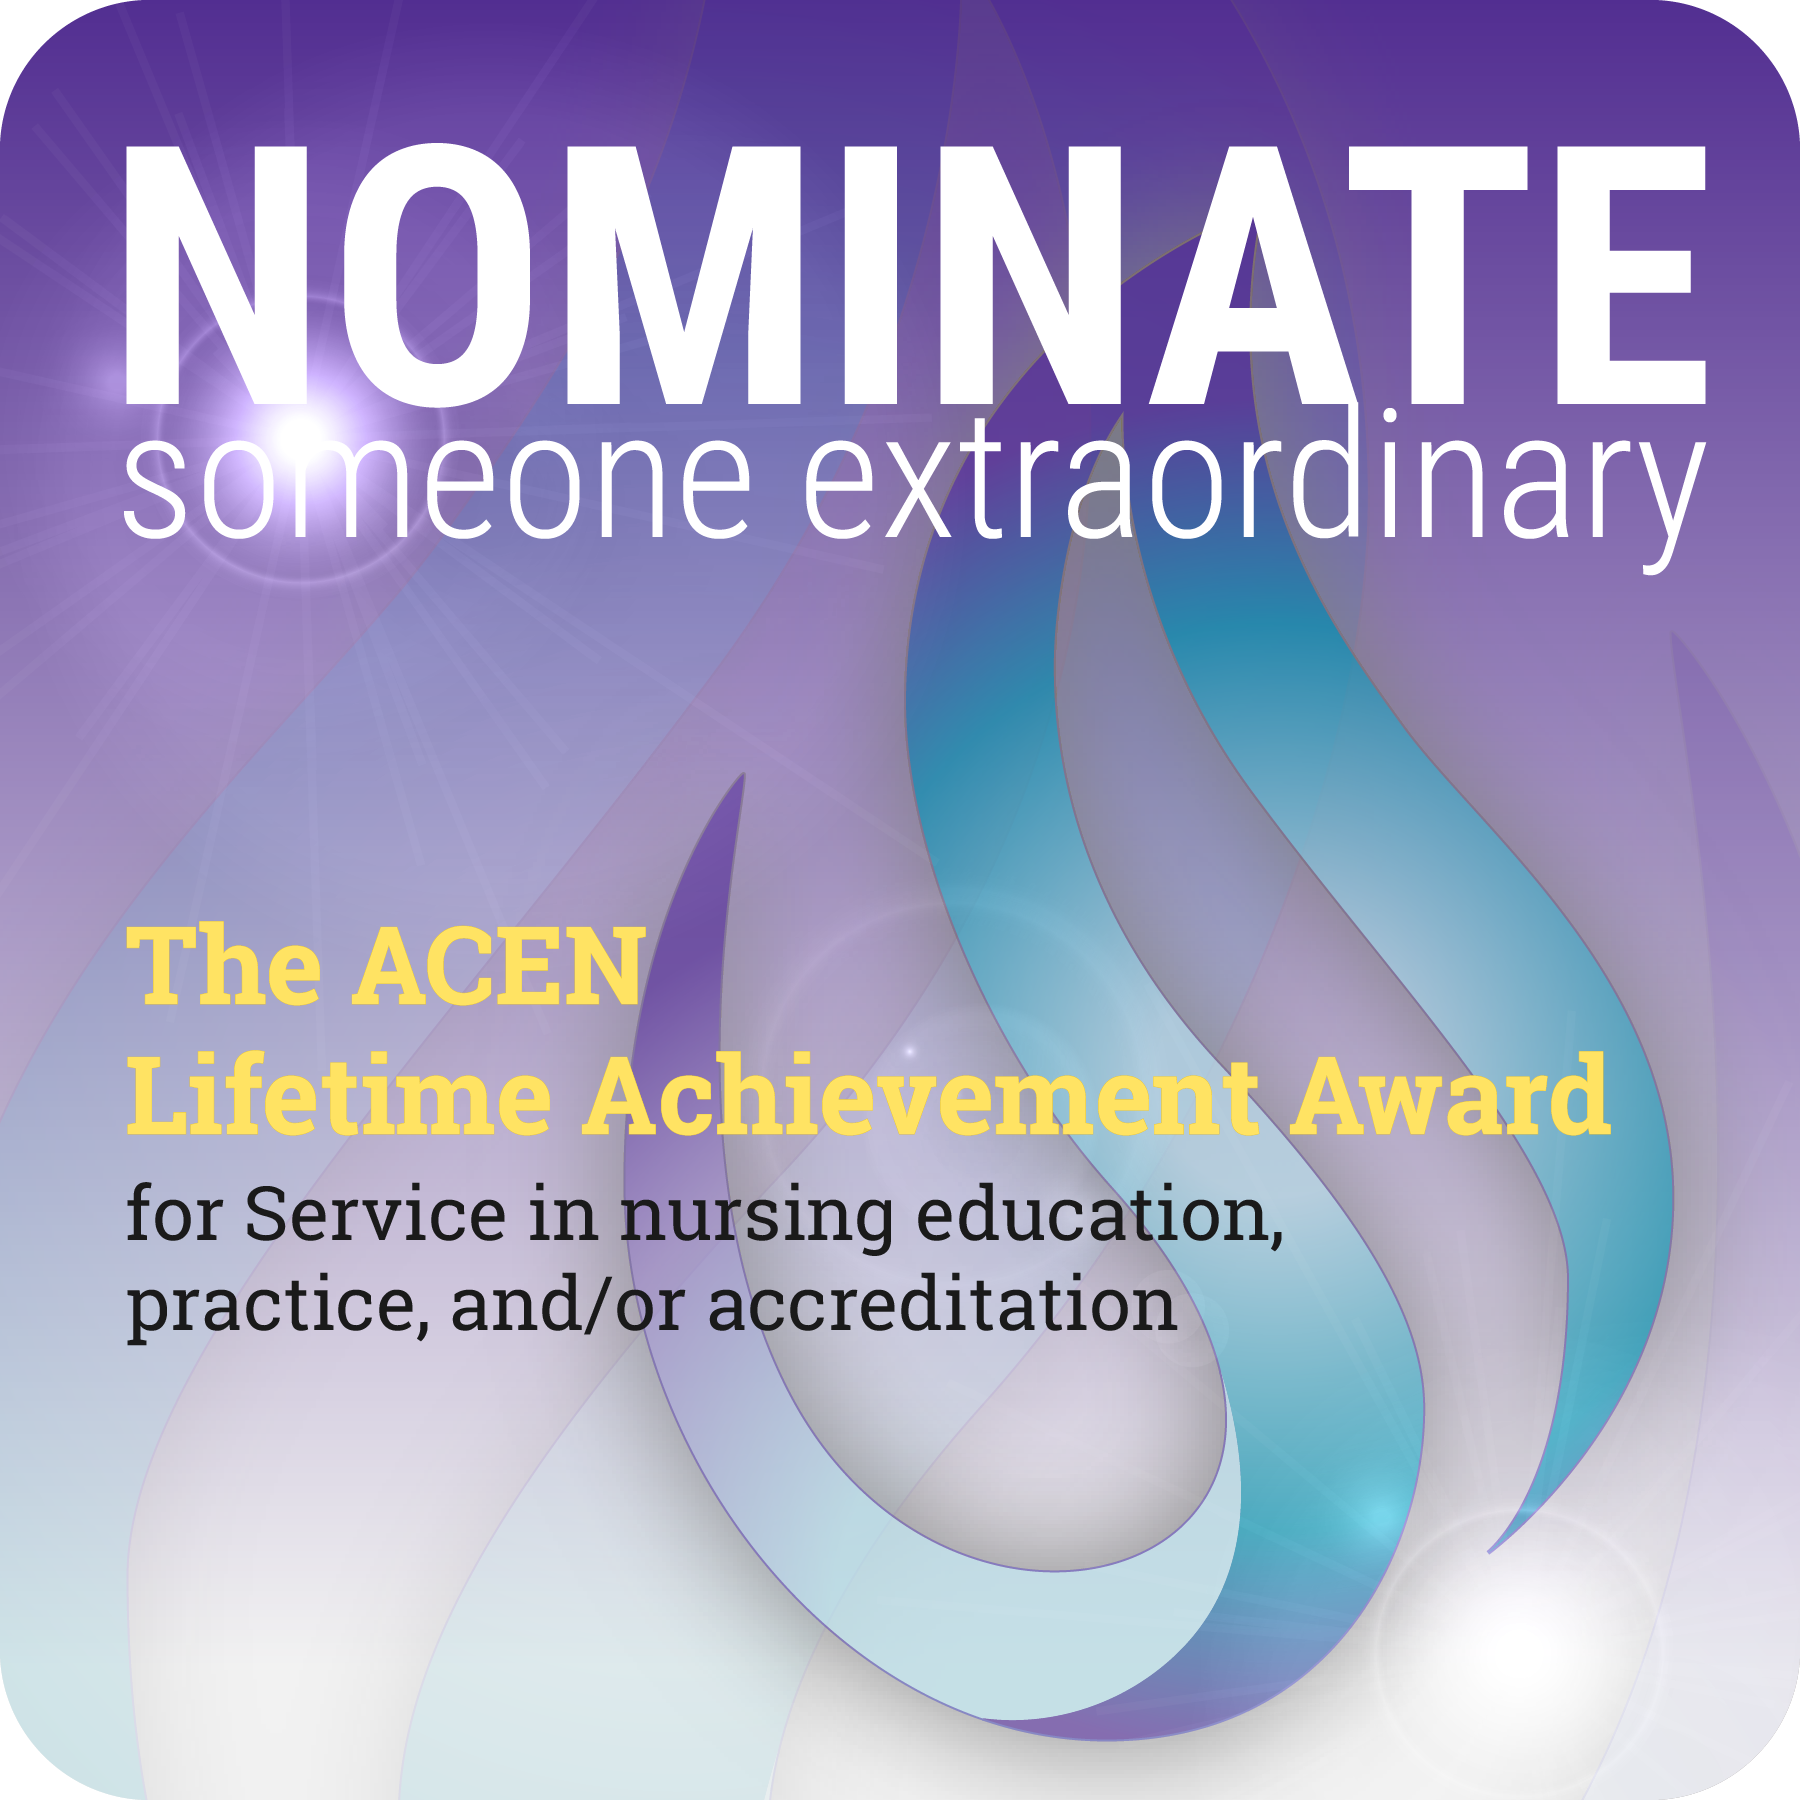 Nominate someone for the ACEN Lifetime Achievement Award